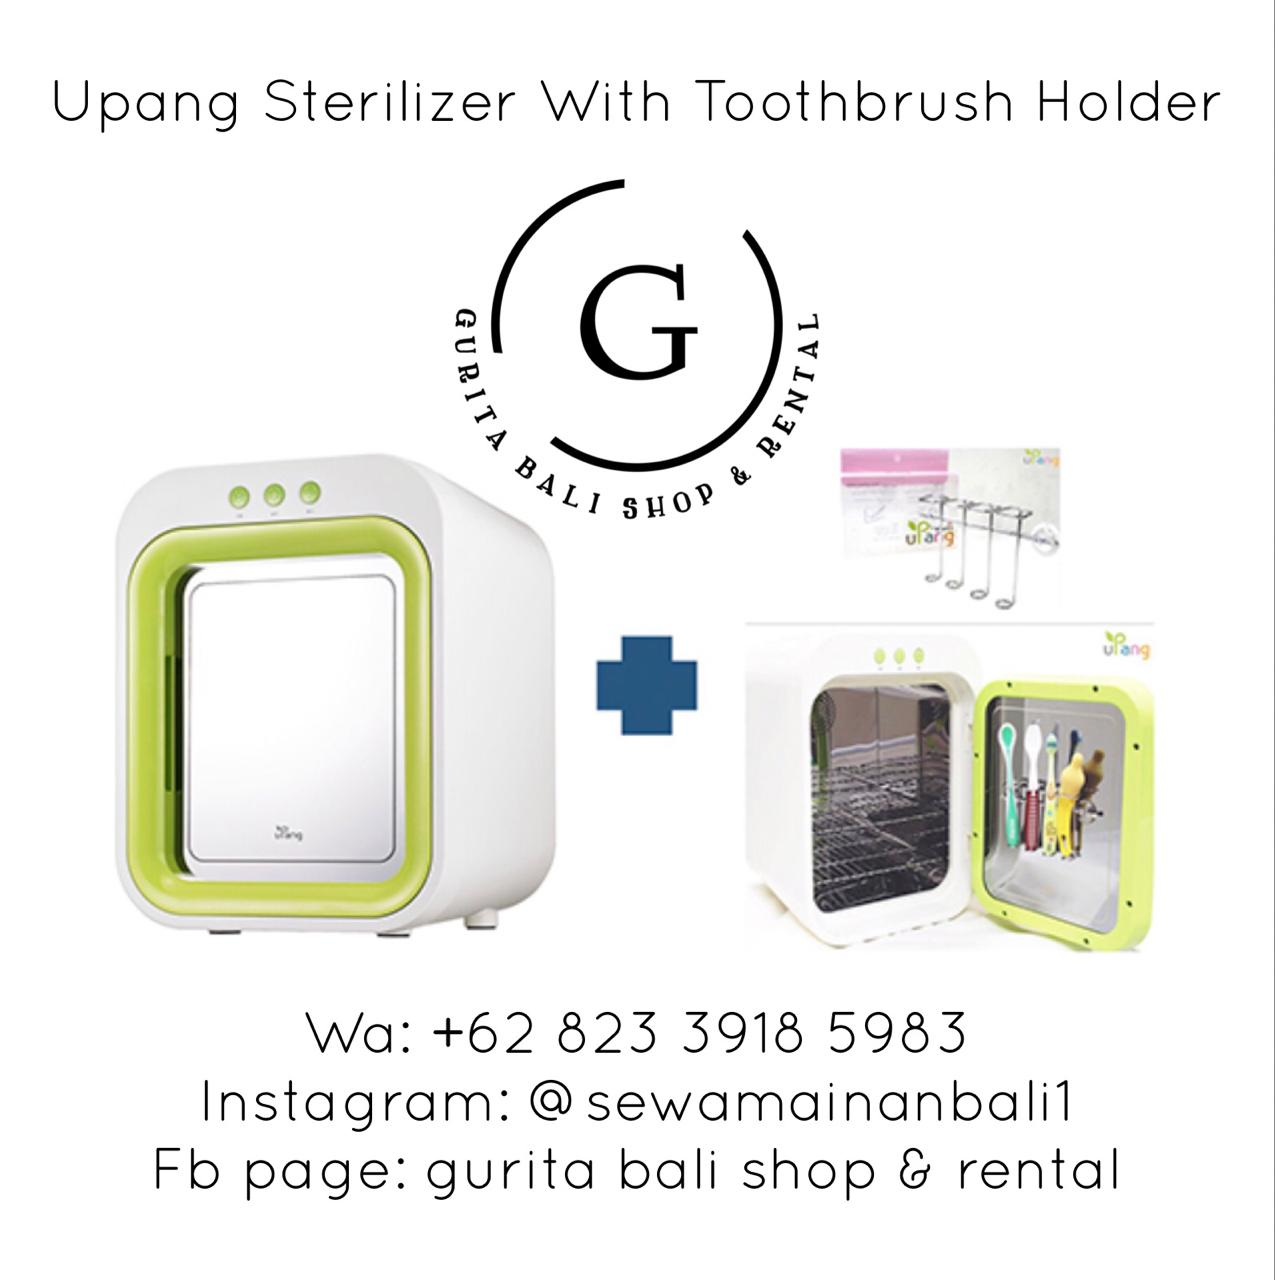 UPANG STERILIZER WITH TOOTBRUSH HOLDER